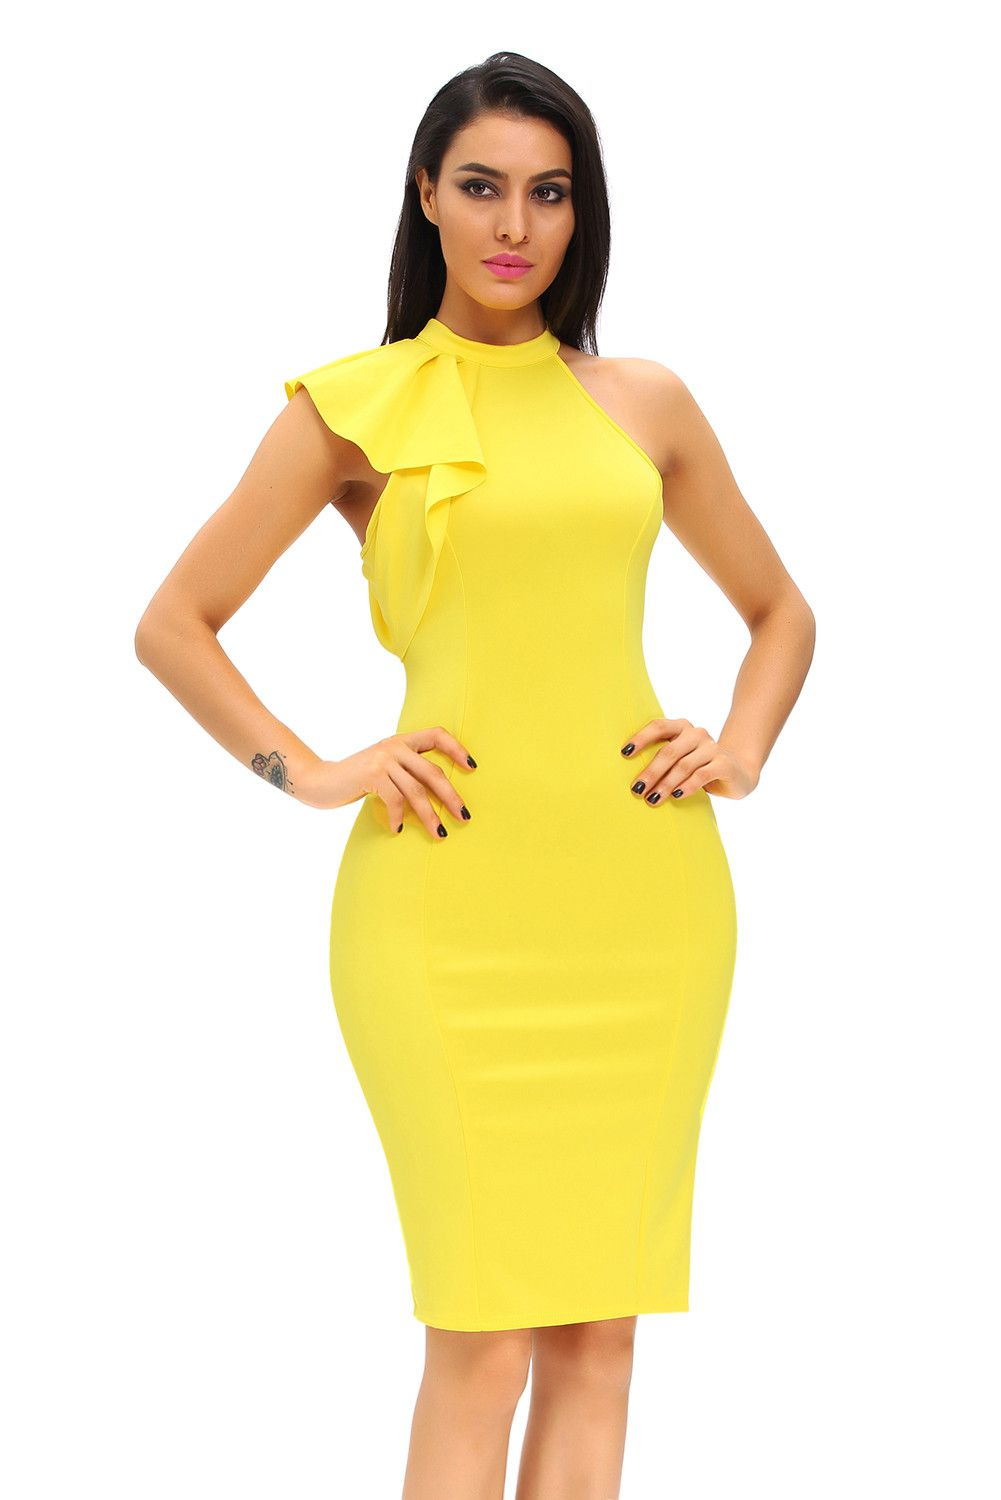 fd28b66c713 Midi Robe Jaune Robe Manches A Volants Pas Cher www.modebuy.com  Modebuy   Modebuy  Jaune  dress  Jaune  robes